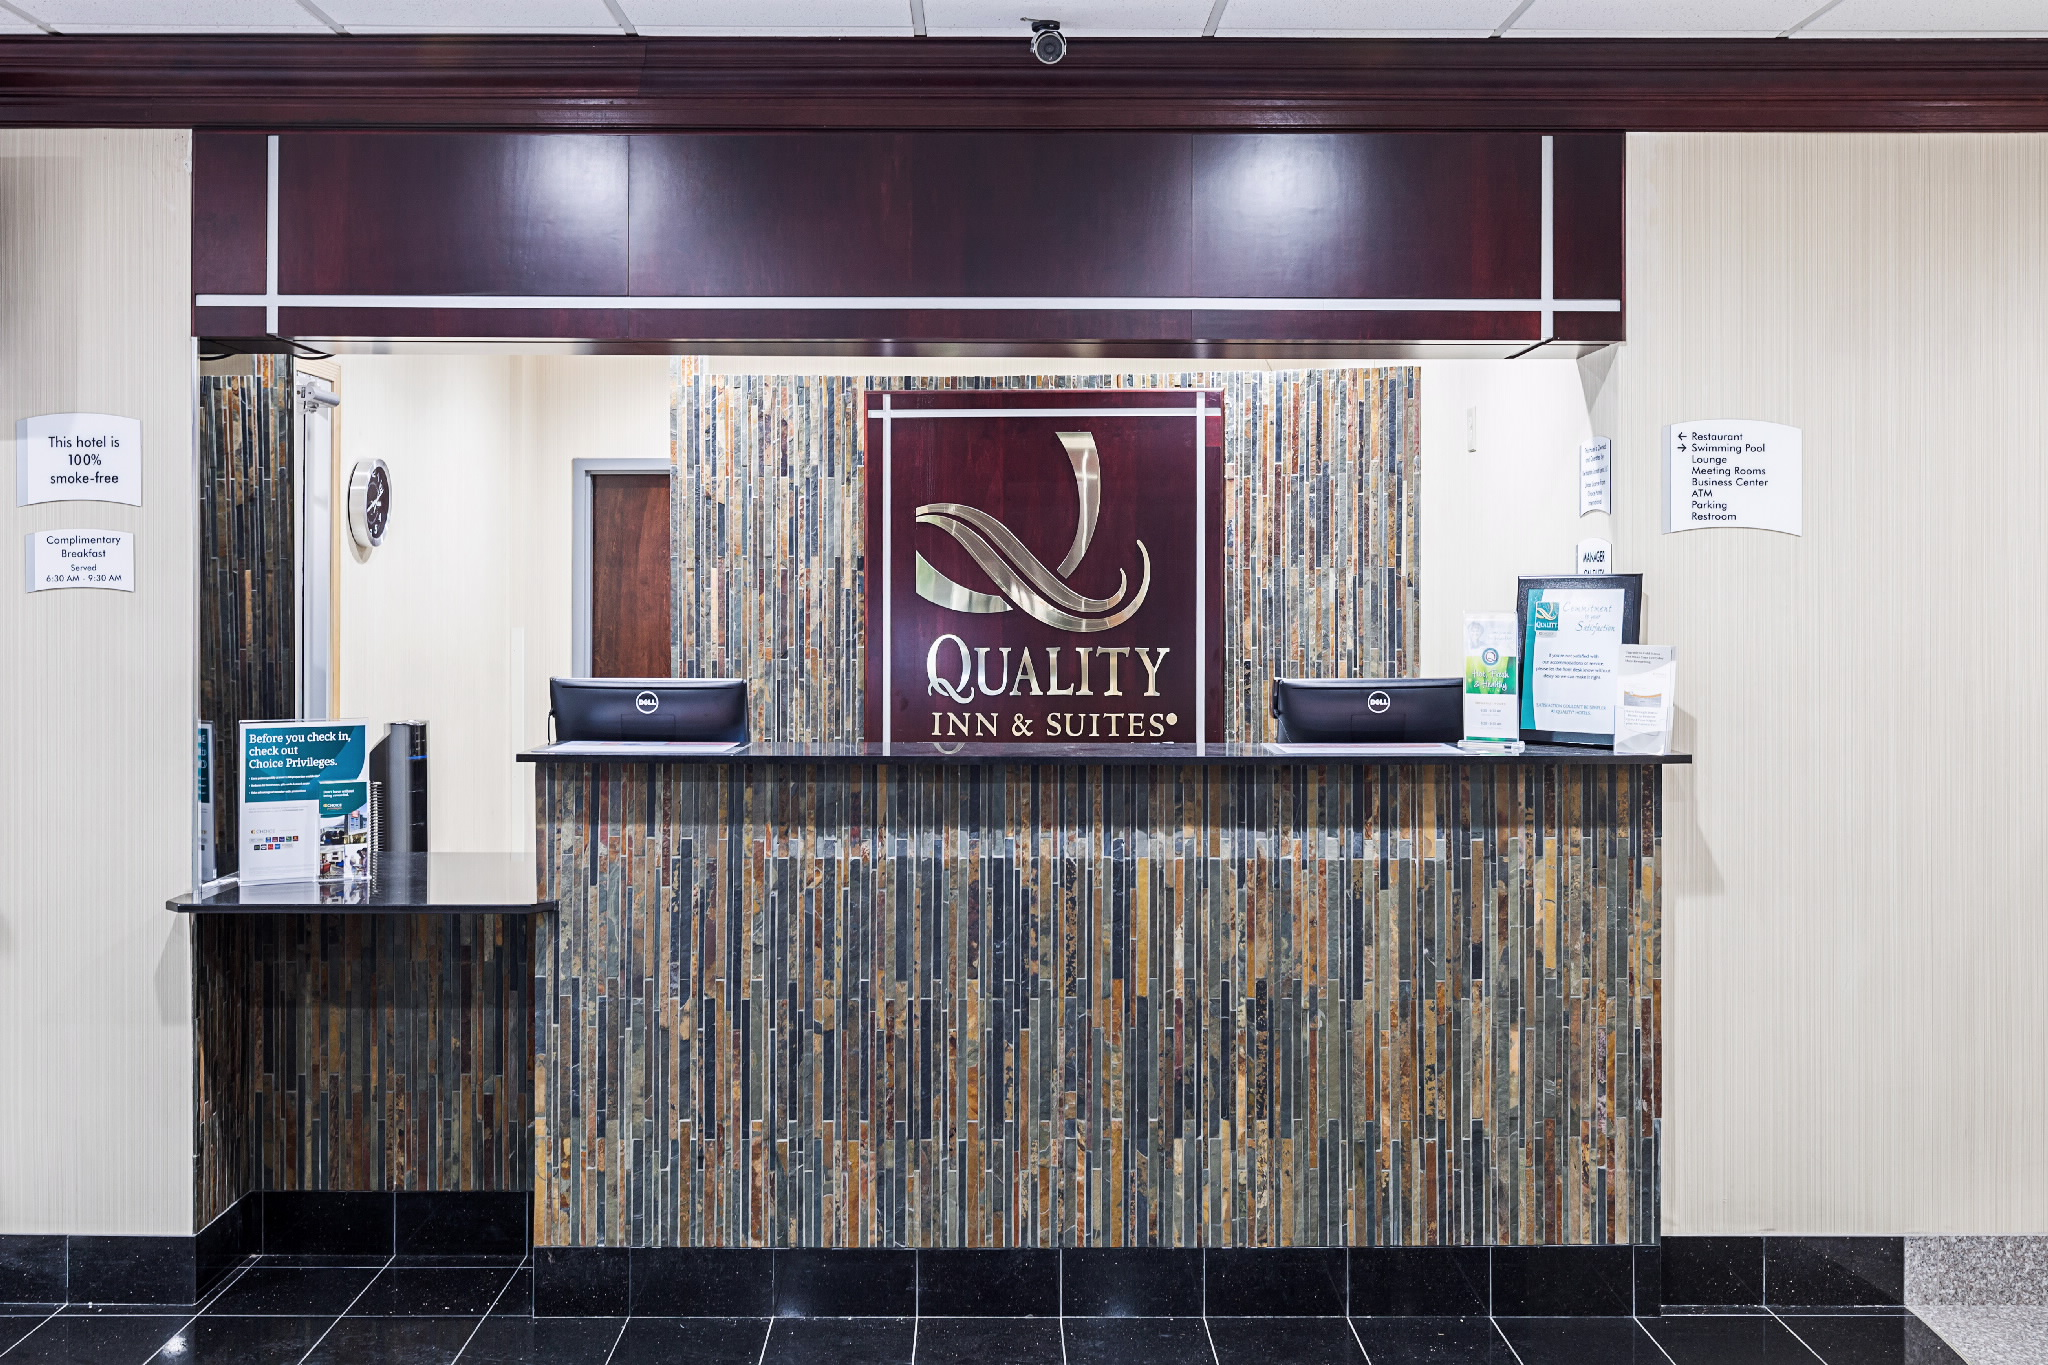 Quality Inn & Suites image 3